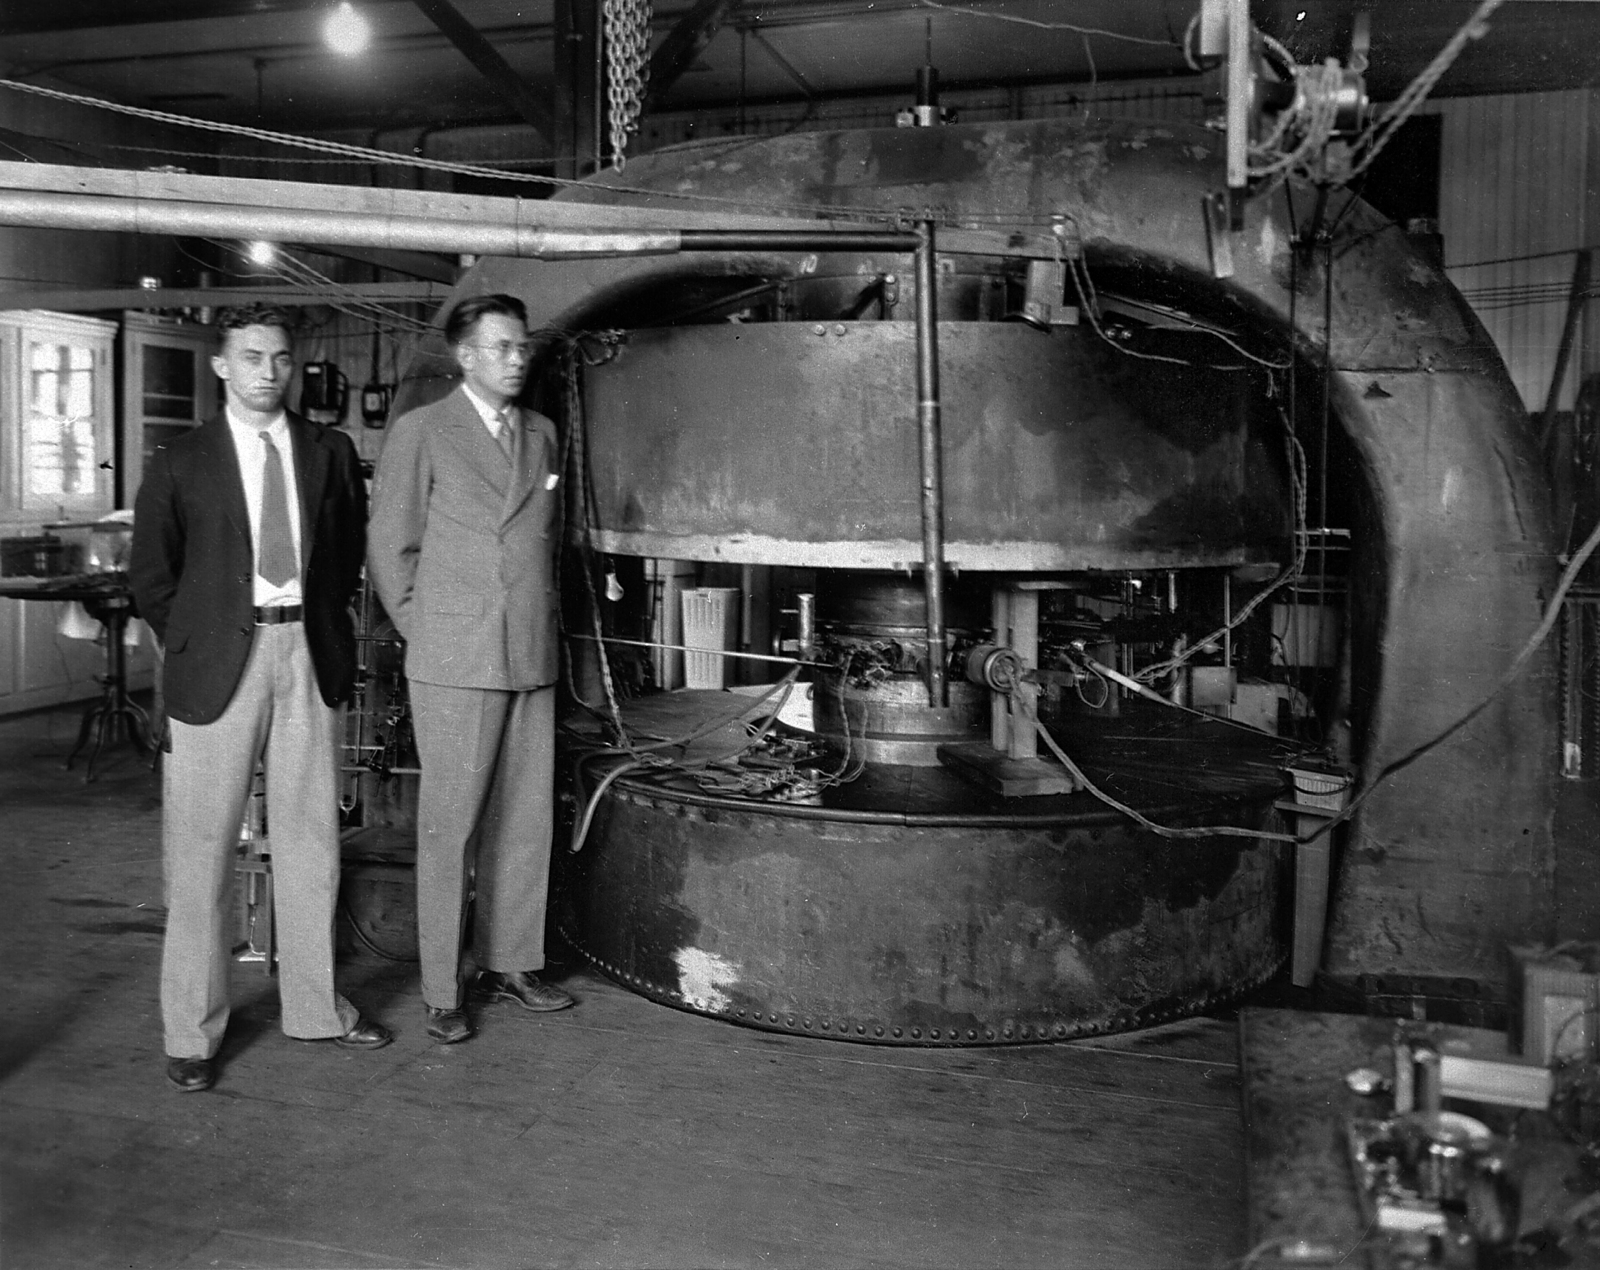 1933 - Standing before 74 tons of iron and copper are Professor M. Stanley Livingston (left) now of the Massachusetts Institute of Technology and Professor Ernest Orlando Lawrence.  Magnet development has continued to expanded more nearly to its capacity, producing the new nuclear particles known as neutrons in quantities sufficient for actual human therapy.  Negative envelope dated February 1, 1940. Principal Investigator/Project: Analog Conversion Project [Photographer: Donald Cooksey]